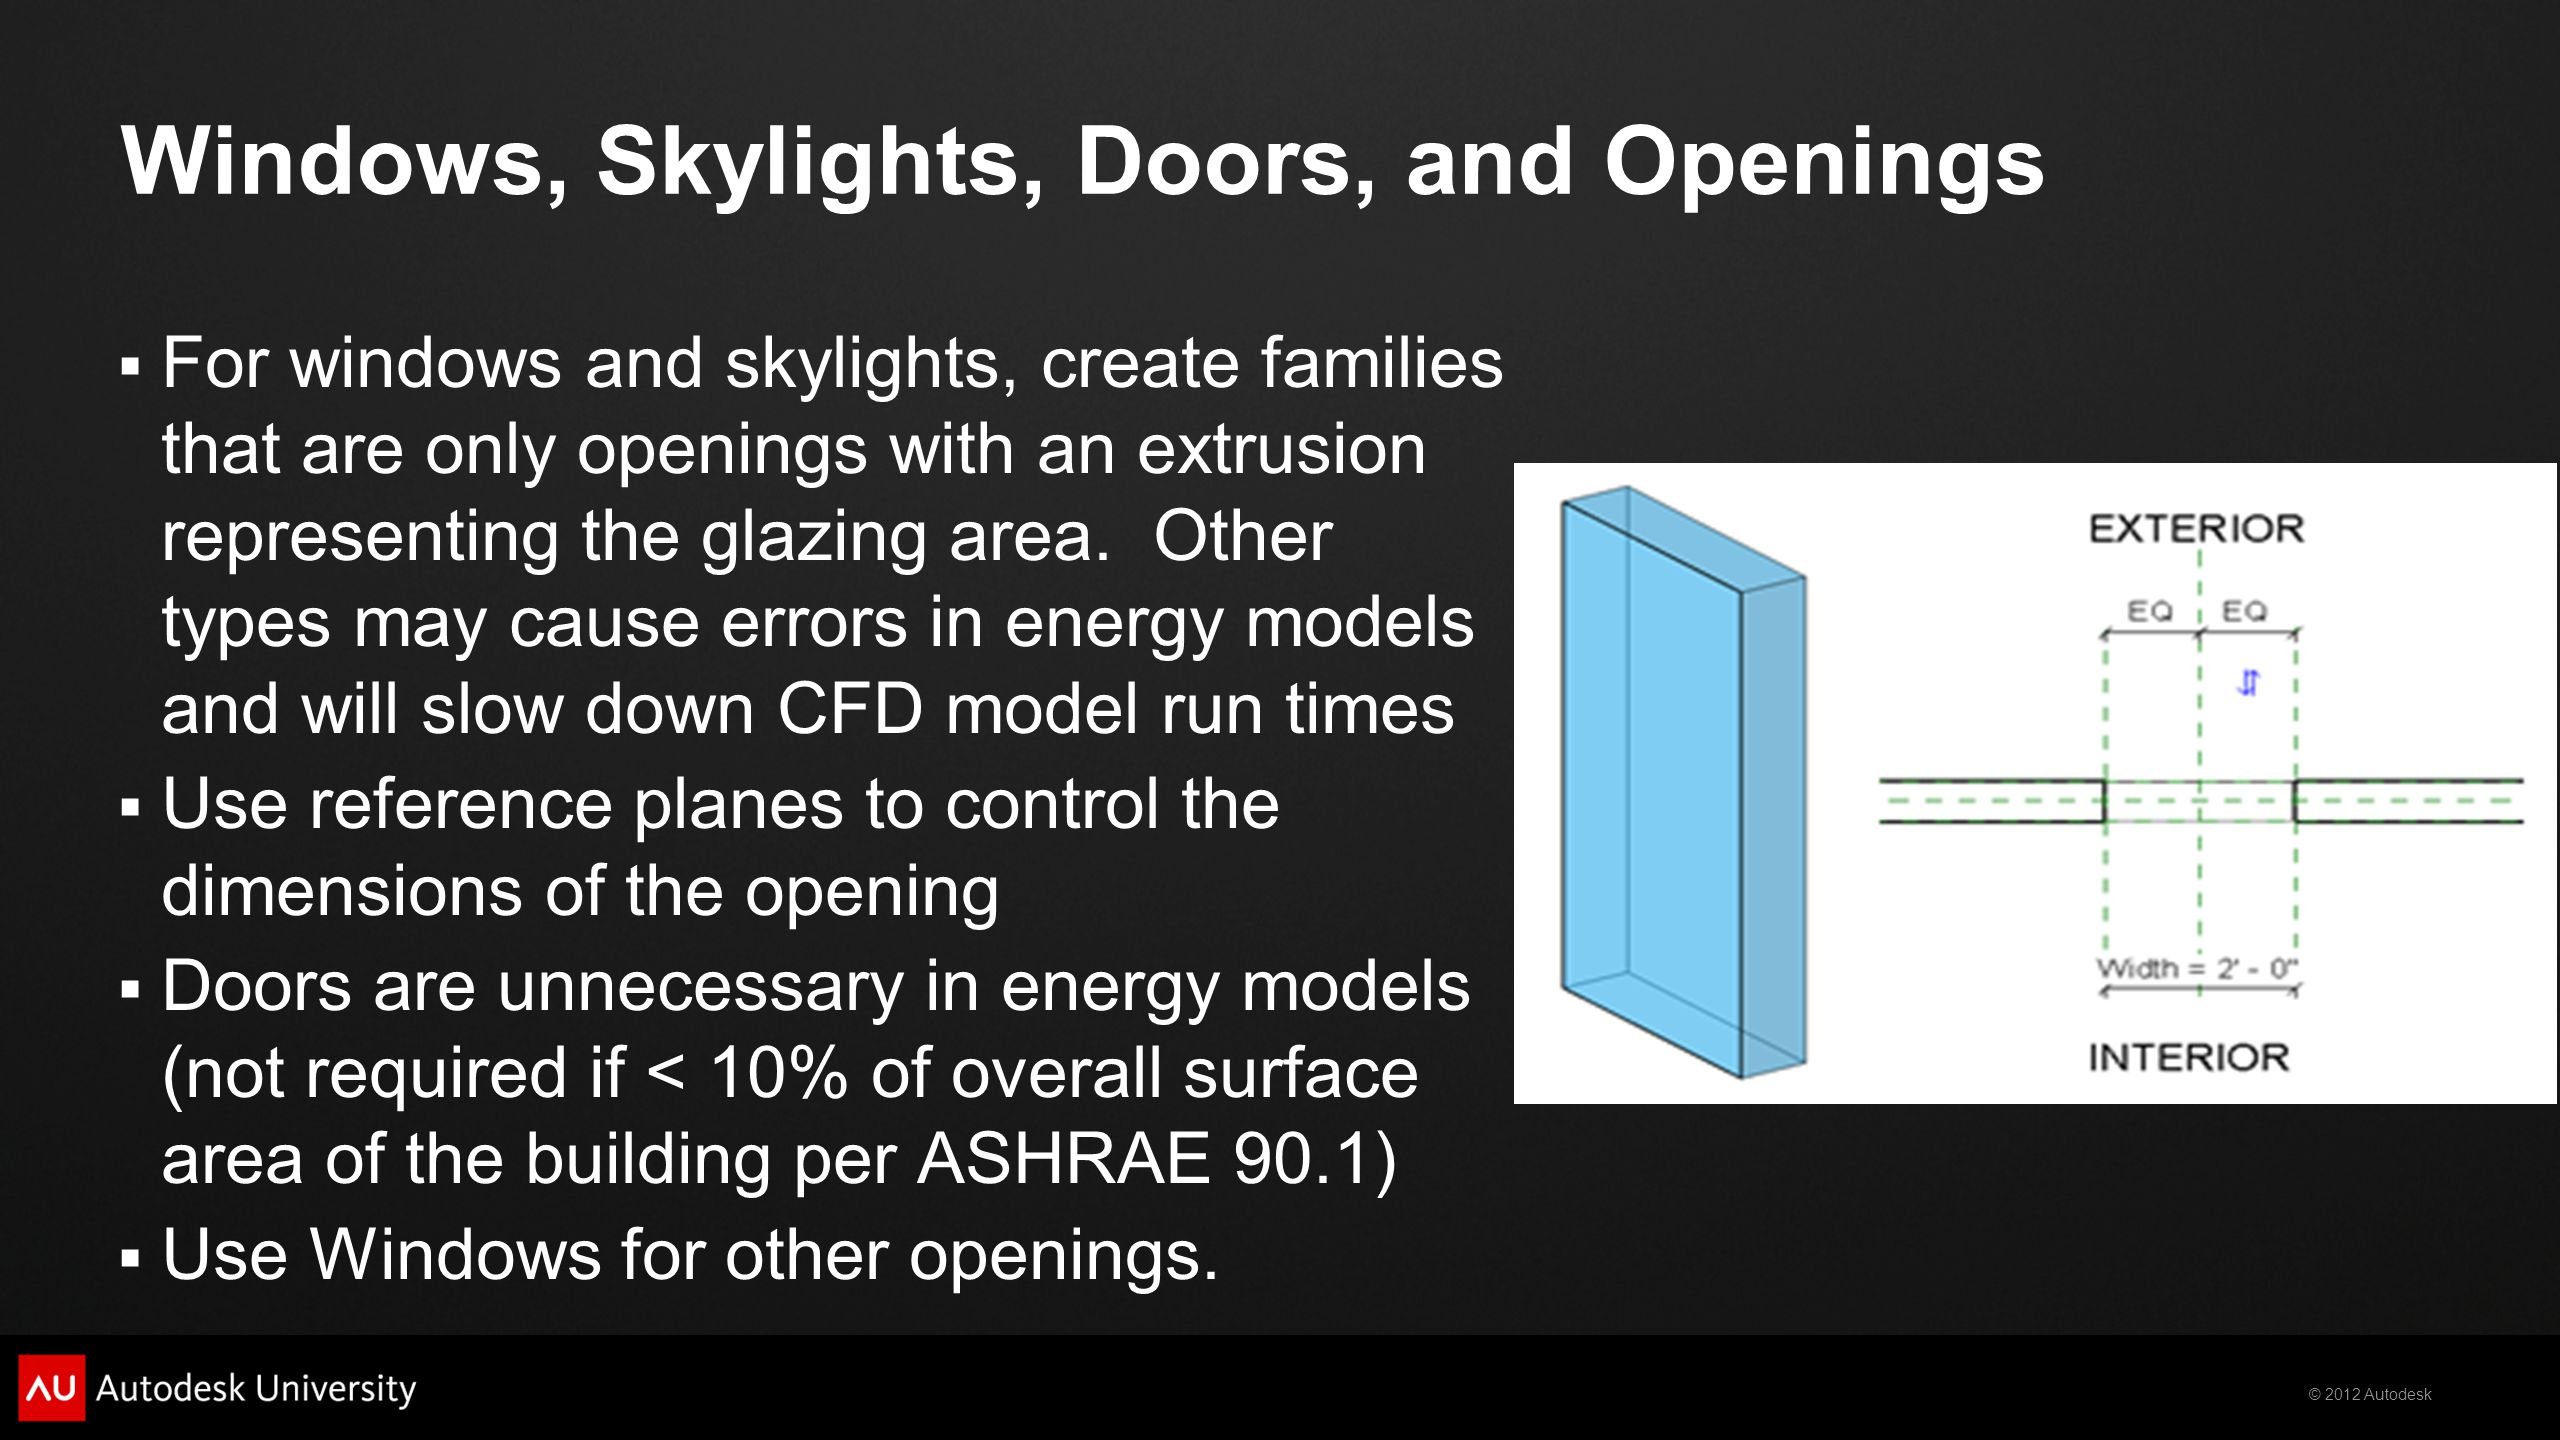 Windows, Skylights, Doors, and Openings